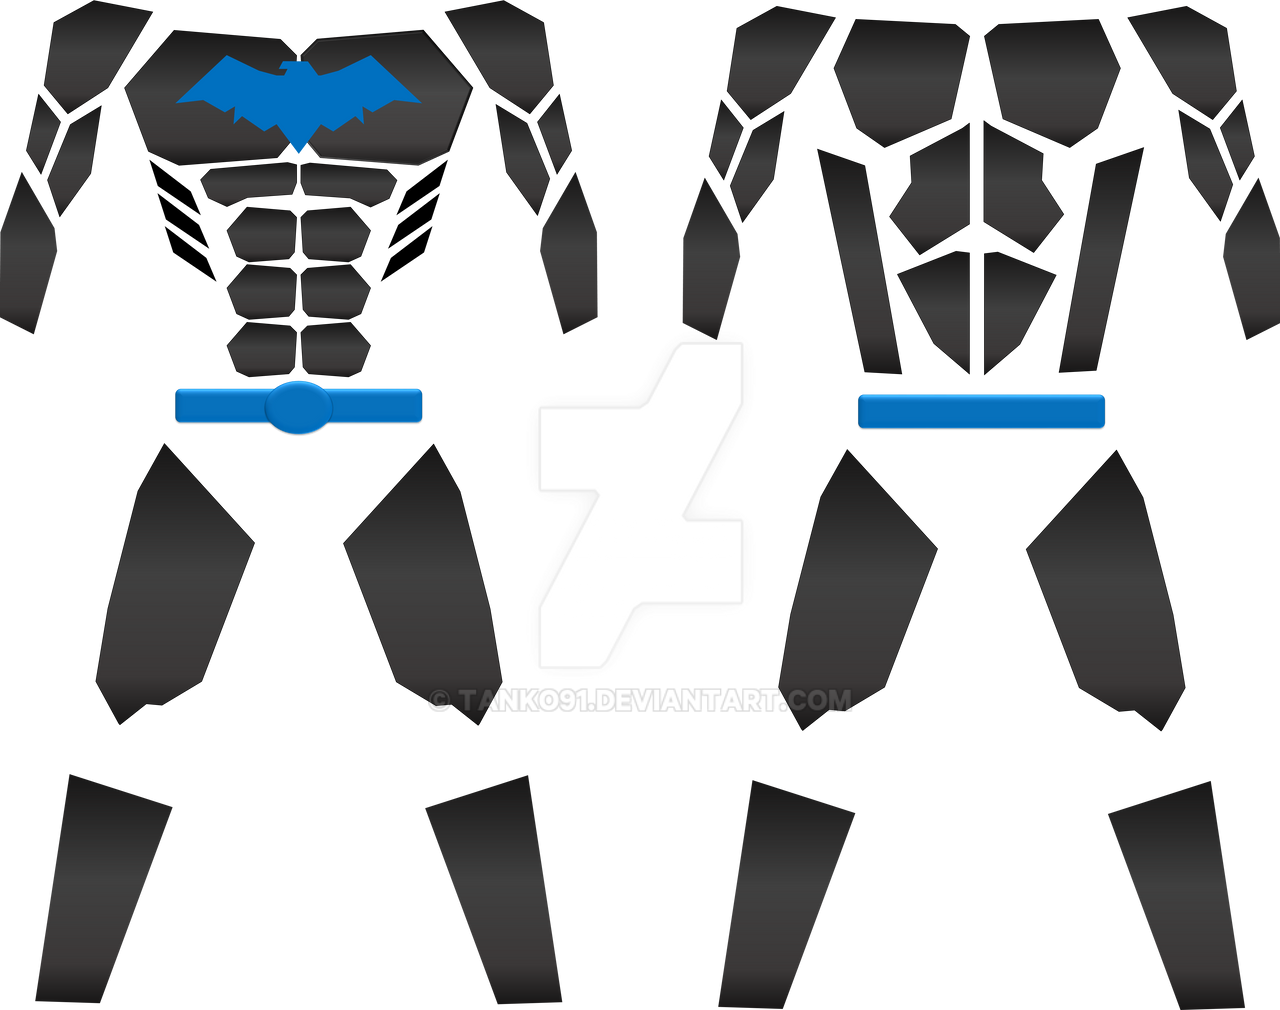 Nightwing Alt Armor Template By Tanko91 On Deviantart